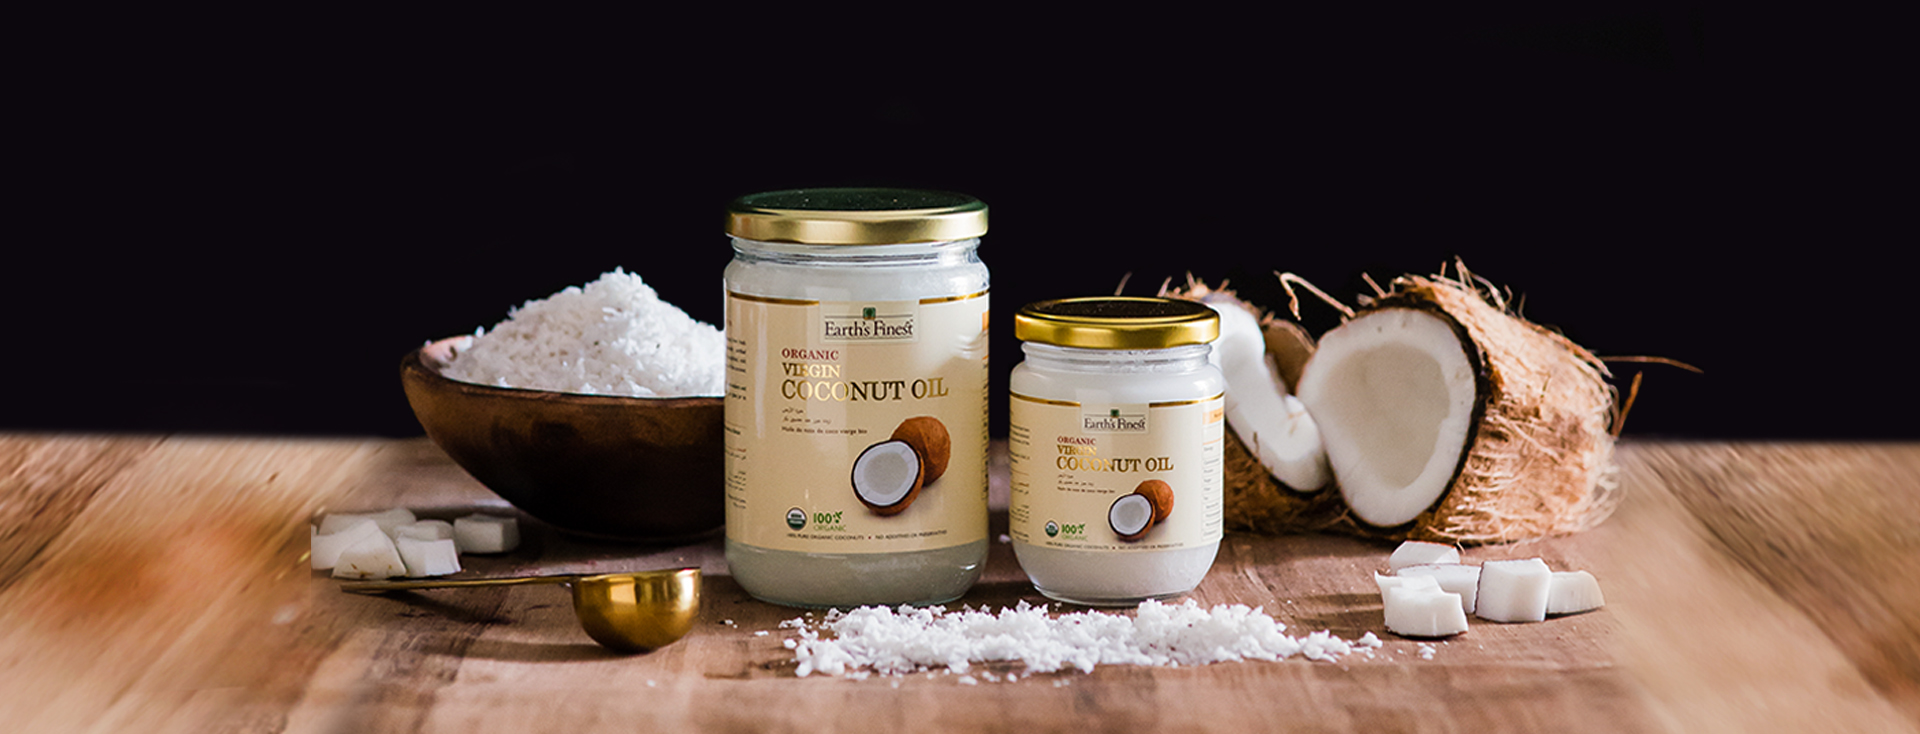 Earth's Finest | Mother Nature's Goodness in every Jar!